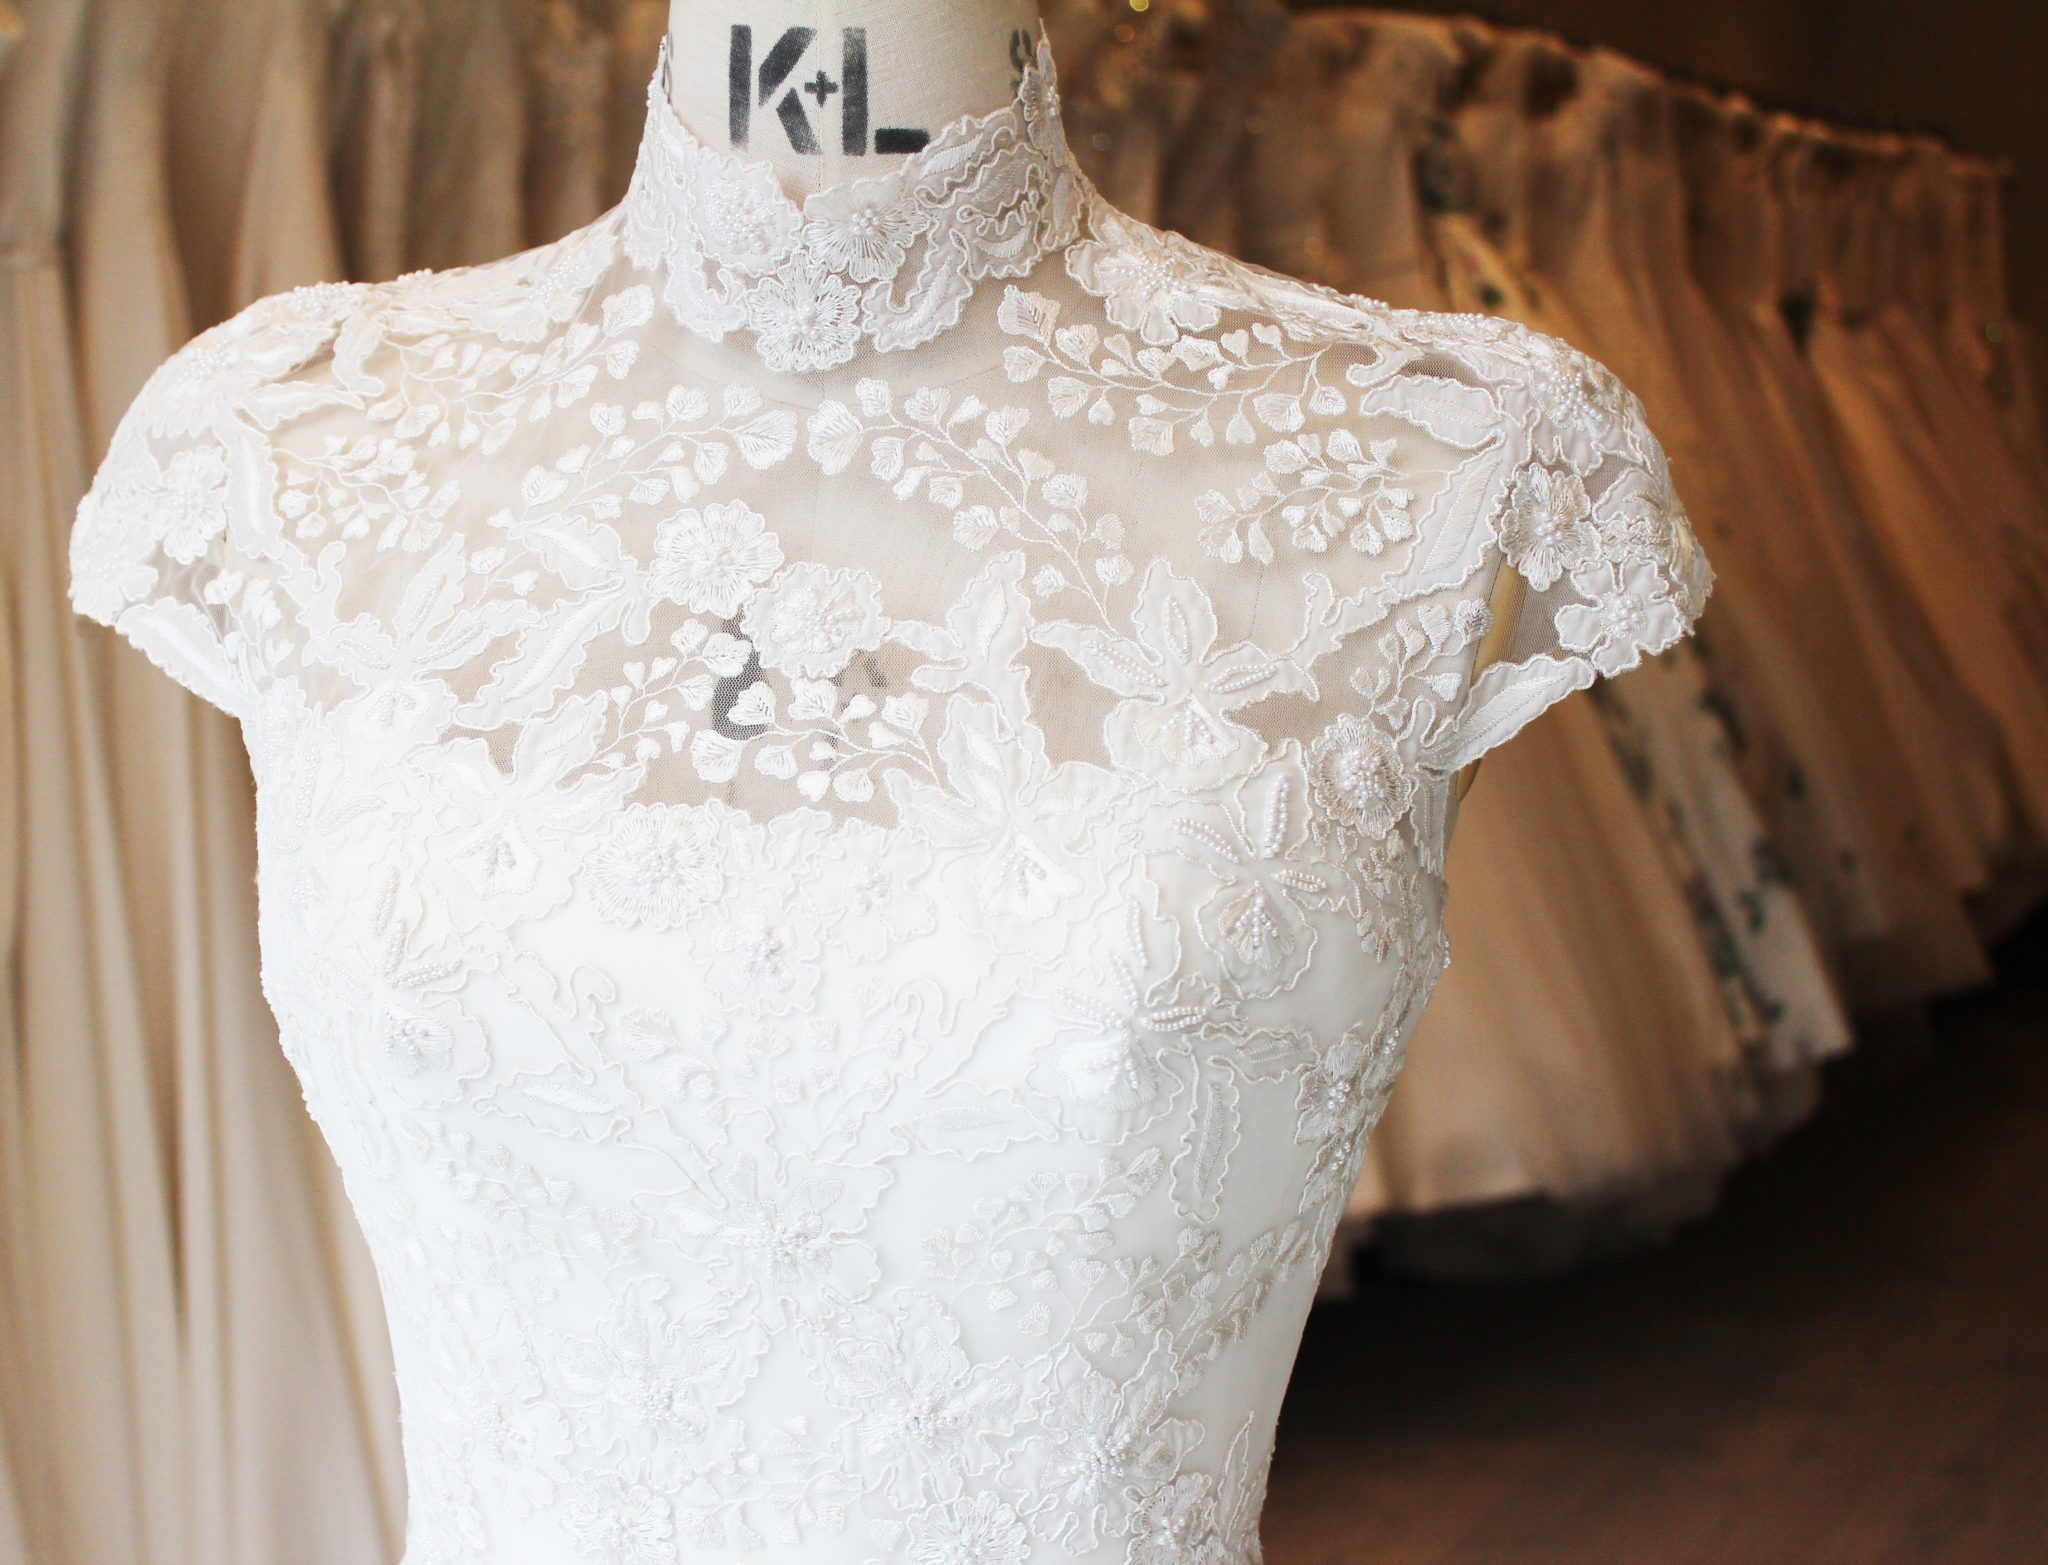 The top of a Phillipa Lepley high neck embroidered wedding gown with cap sleeves.